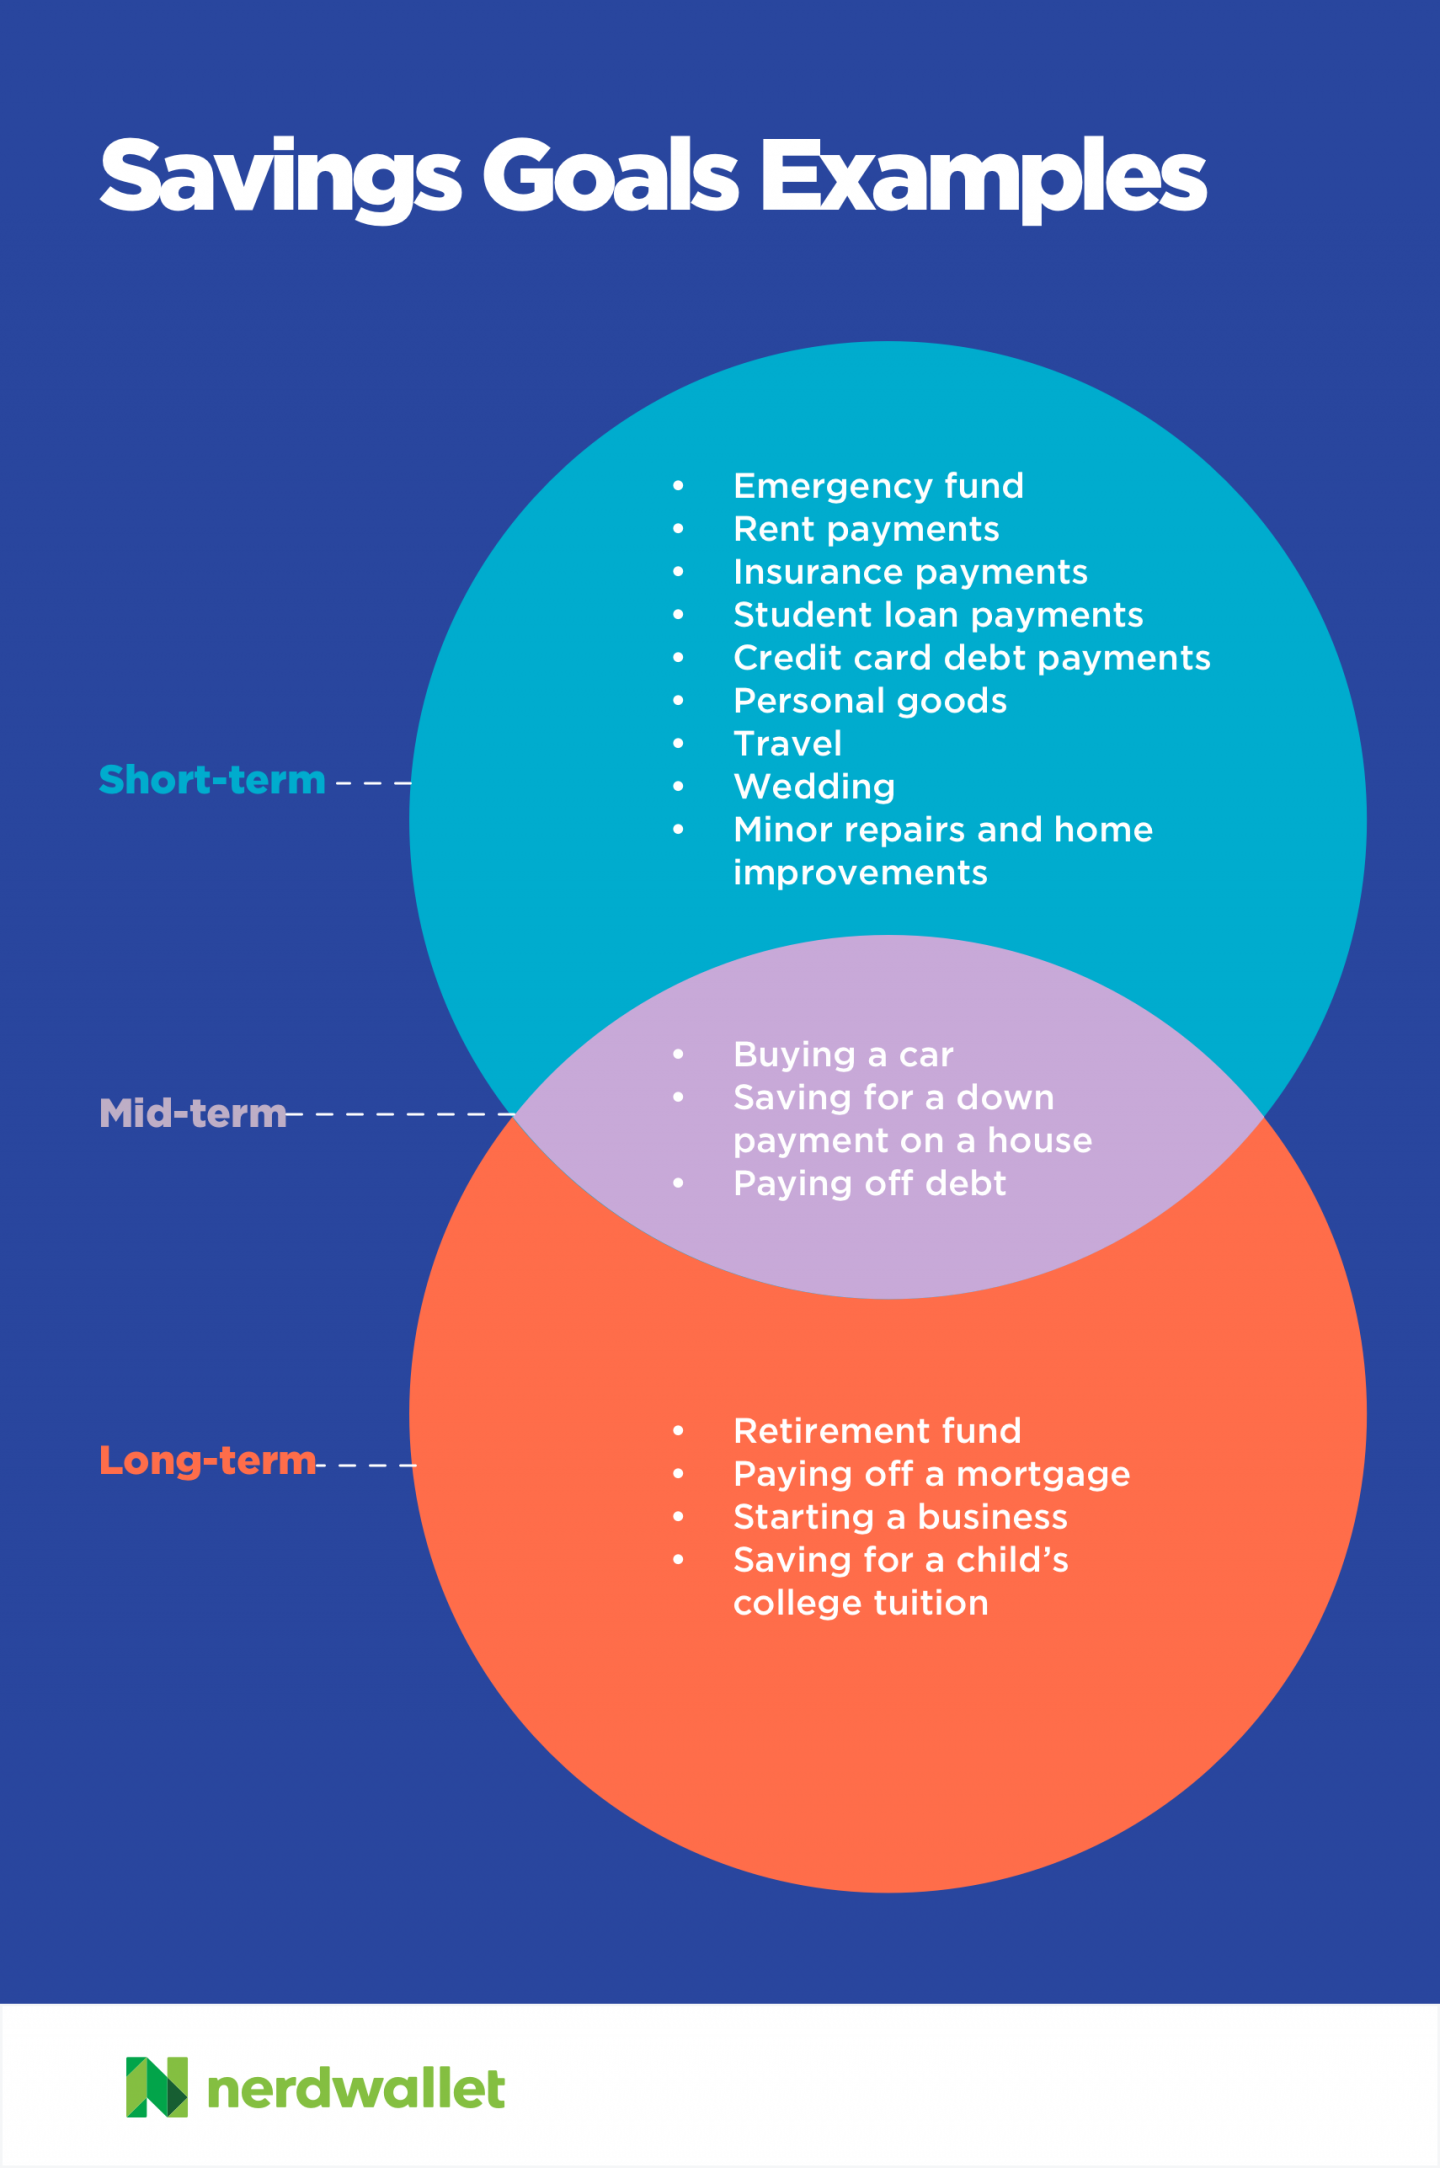 How To Budget For Short Term And Long Term Financial Goals Nerdwallet In 2021 Saving Goals Credit Repair Services Save For House